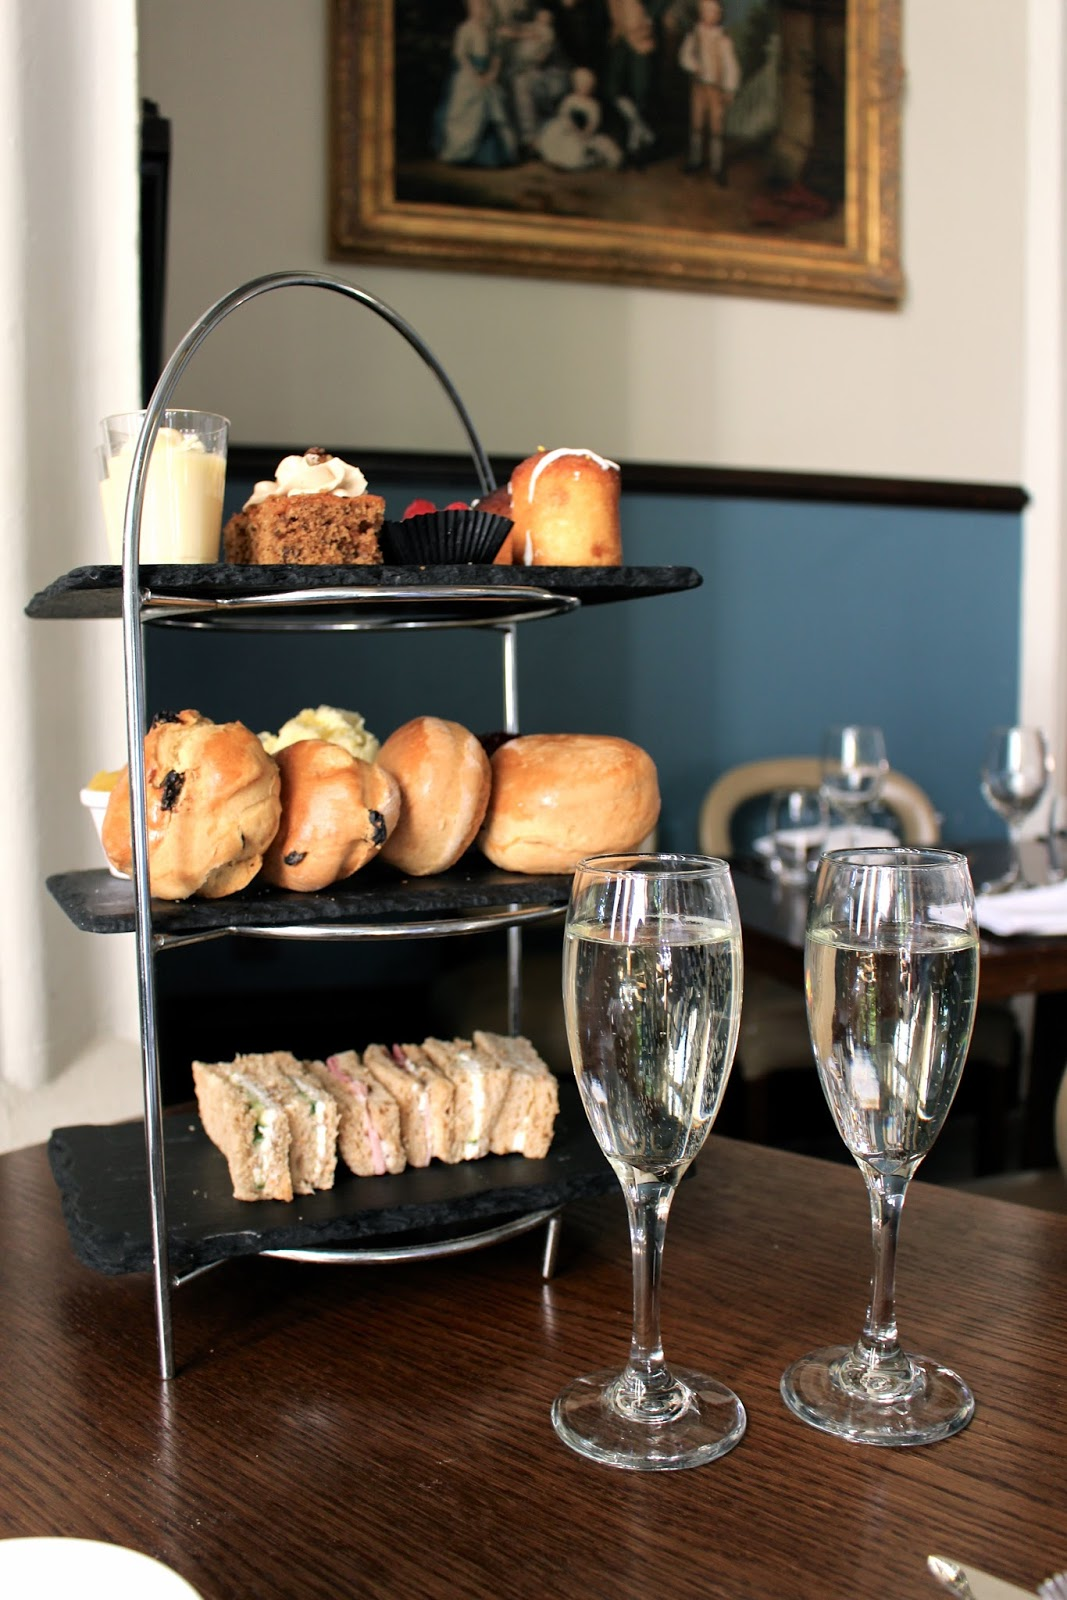 Tortwort Court afternoon tea and prosecco review